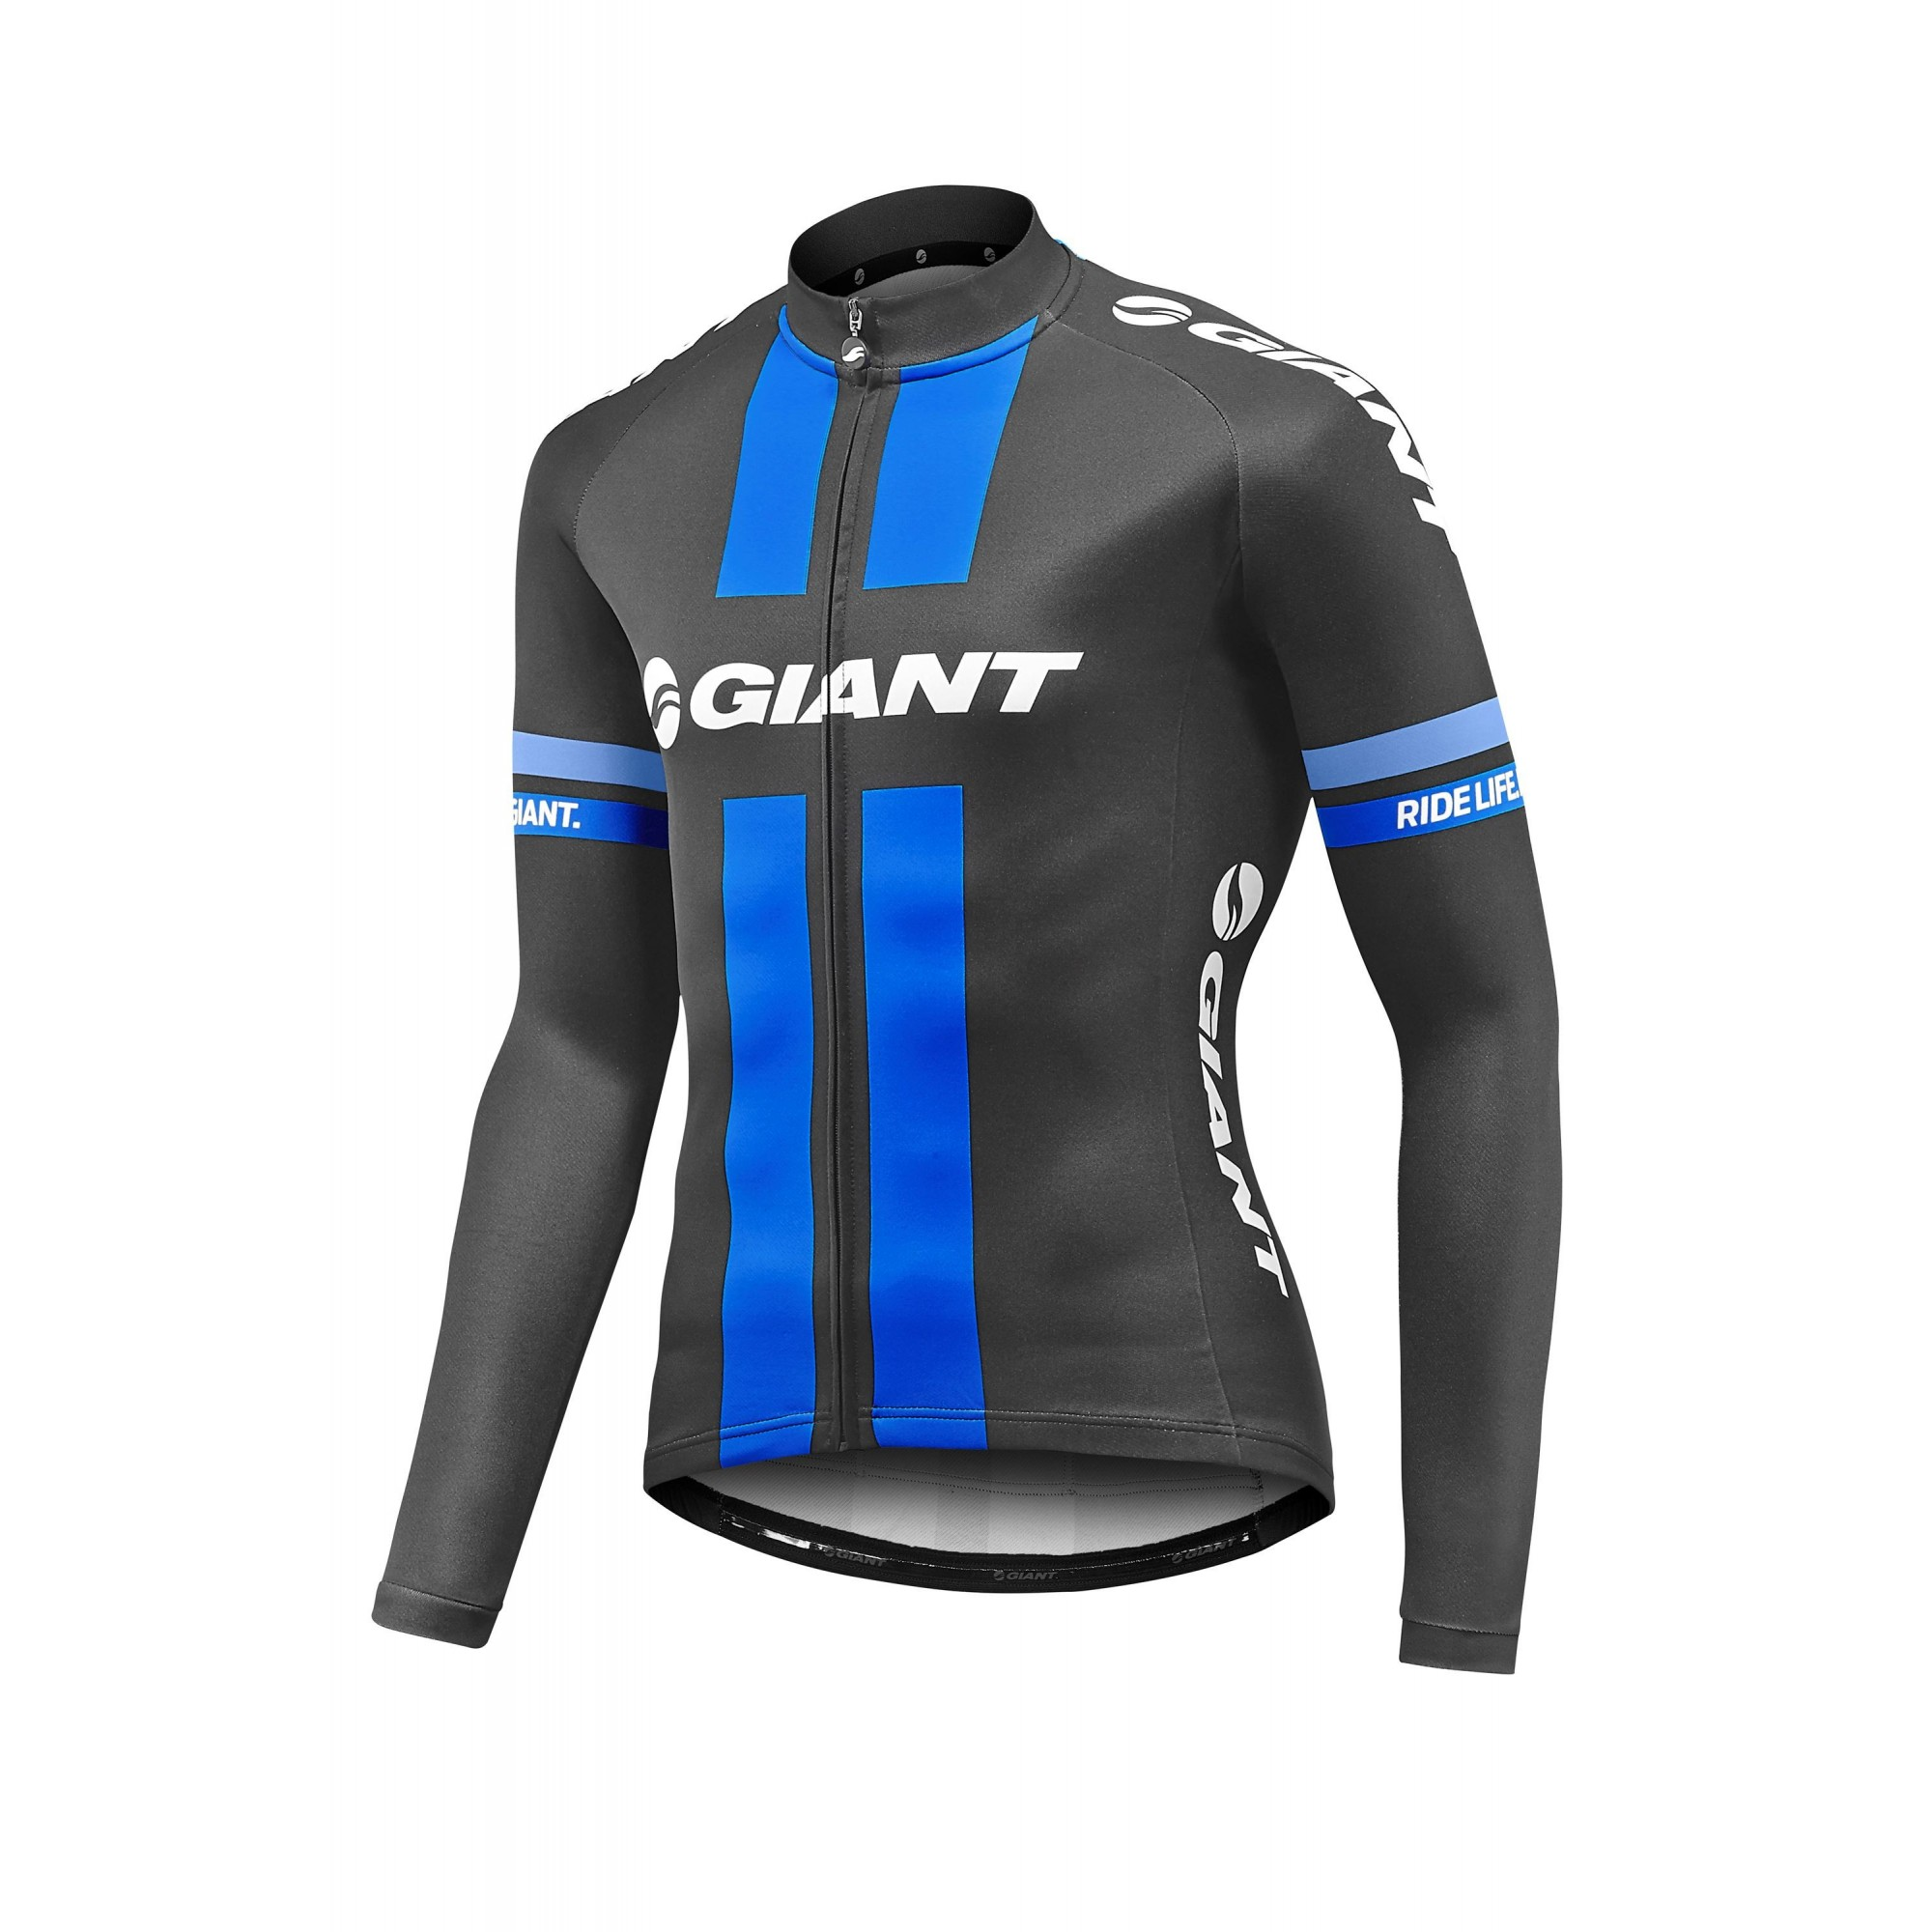 Maillot ML Giant Race Day